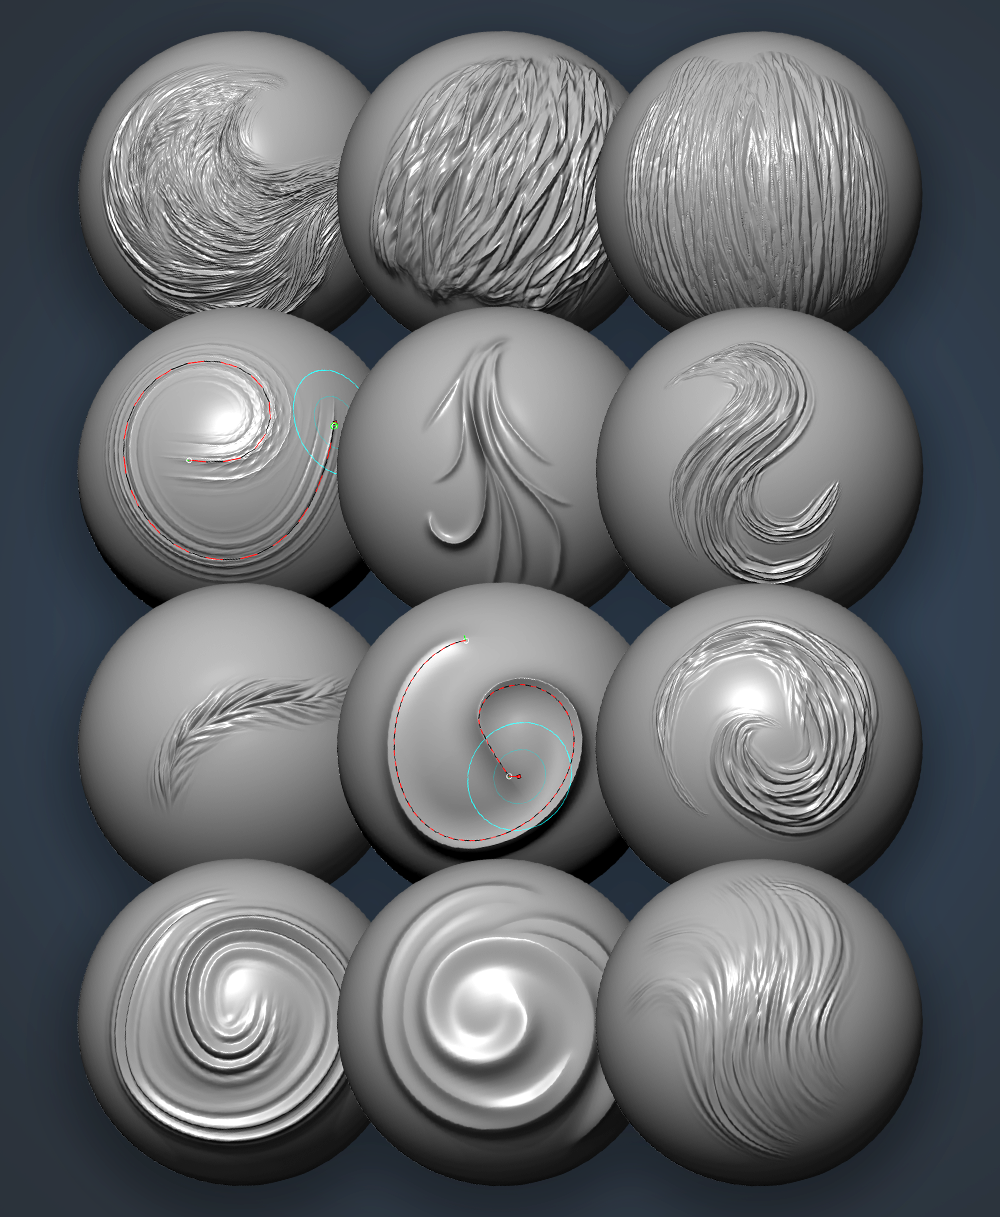 ZBrush sculpting hair brushes pack